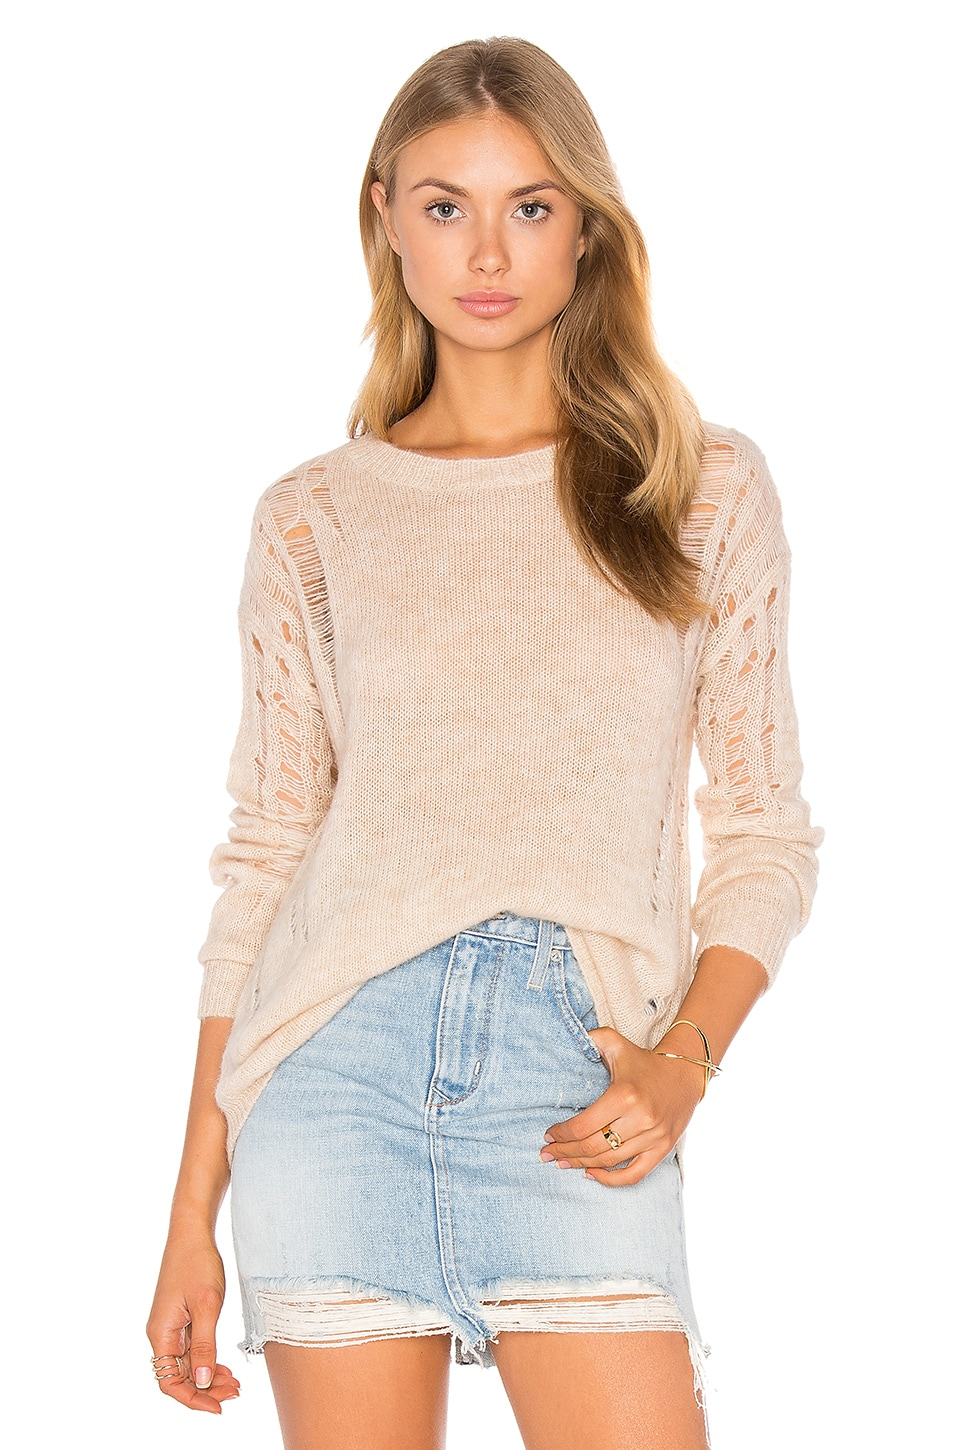 Cora Distressed Sweater by One Grey Day